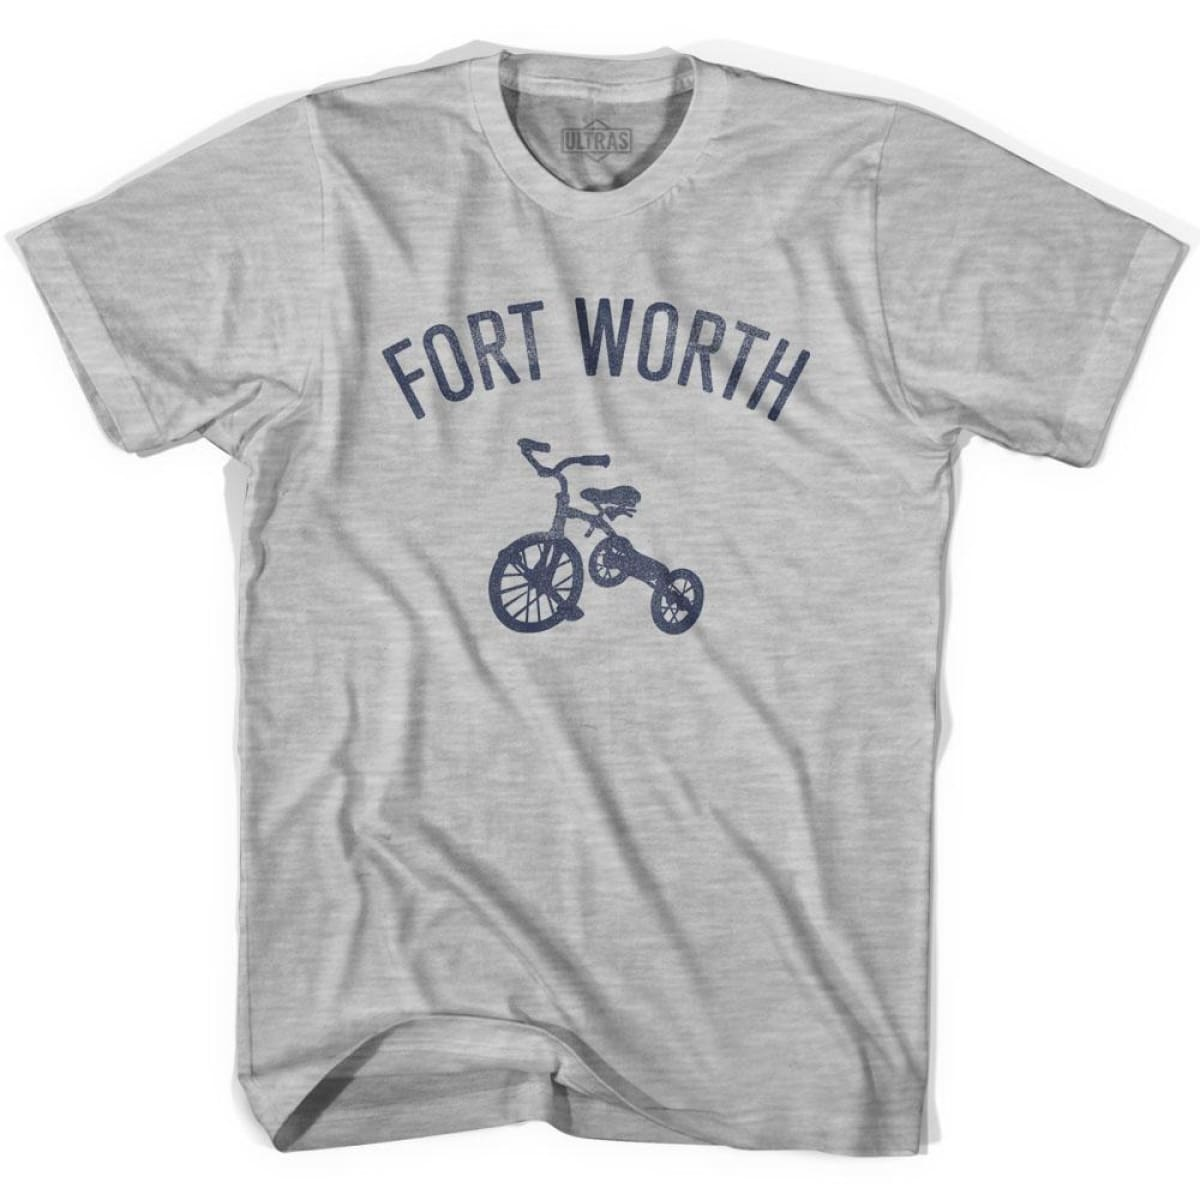 Fort Worth City Tricycle Youth Cotton T-shirt - Tricycle City